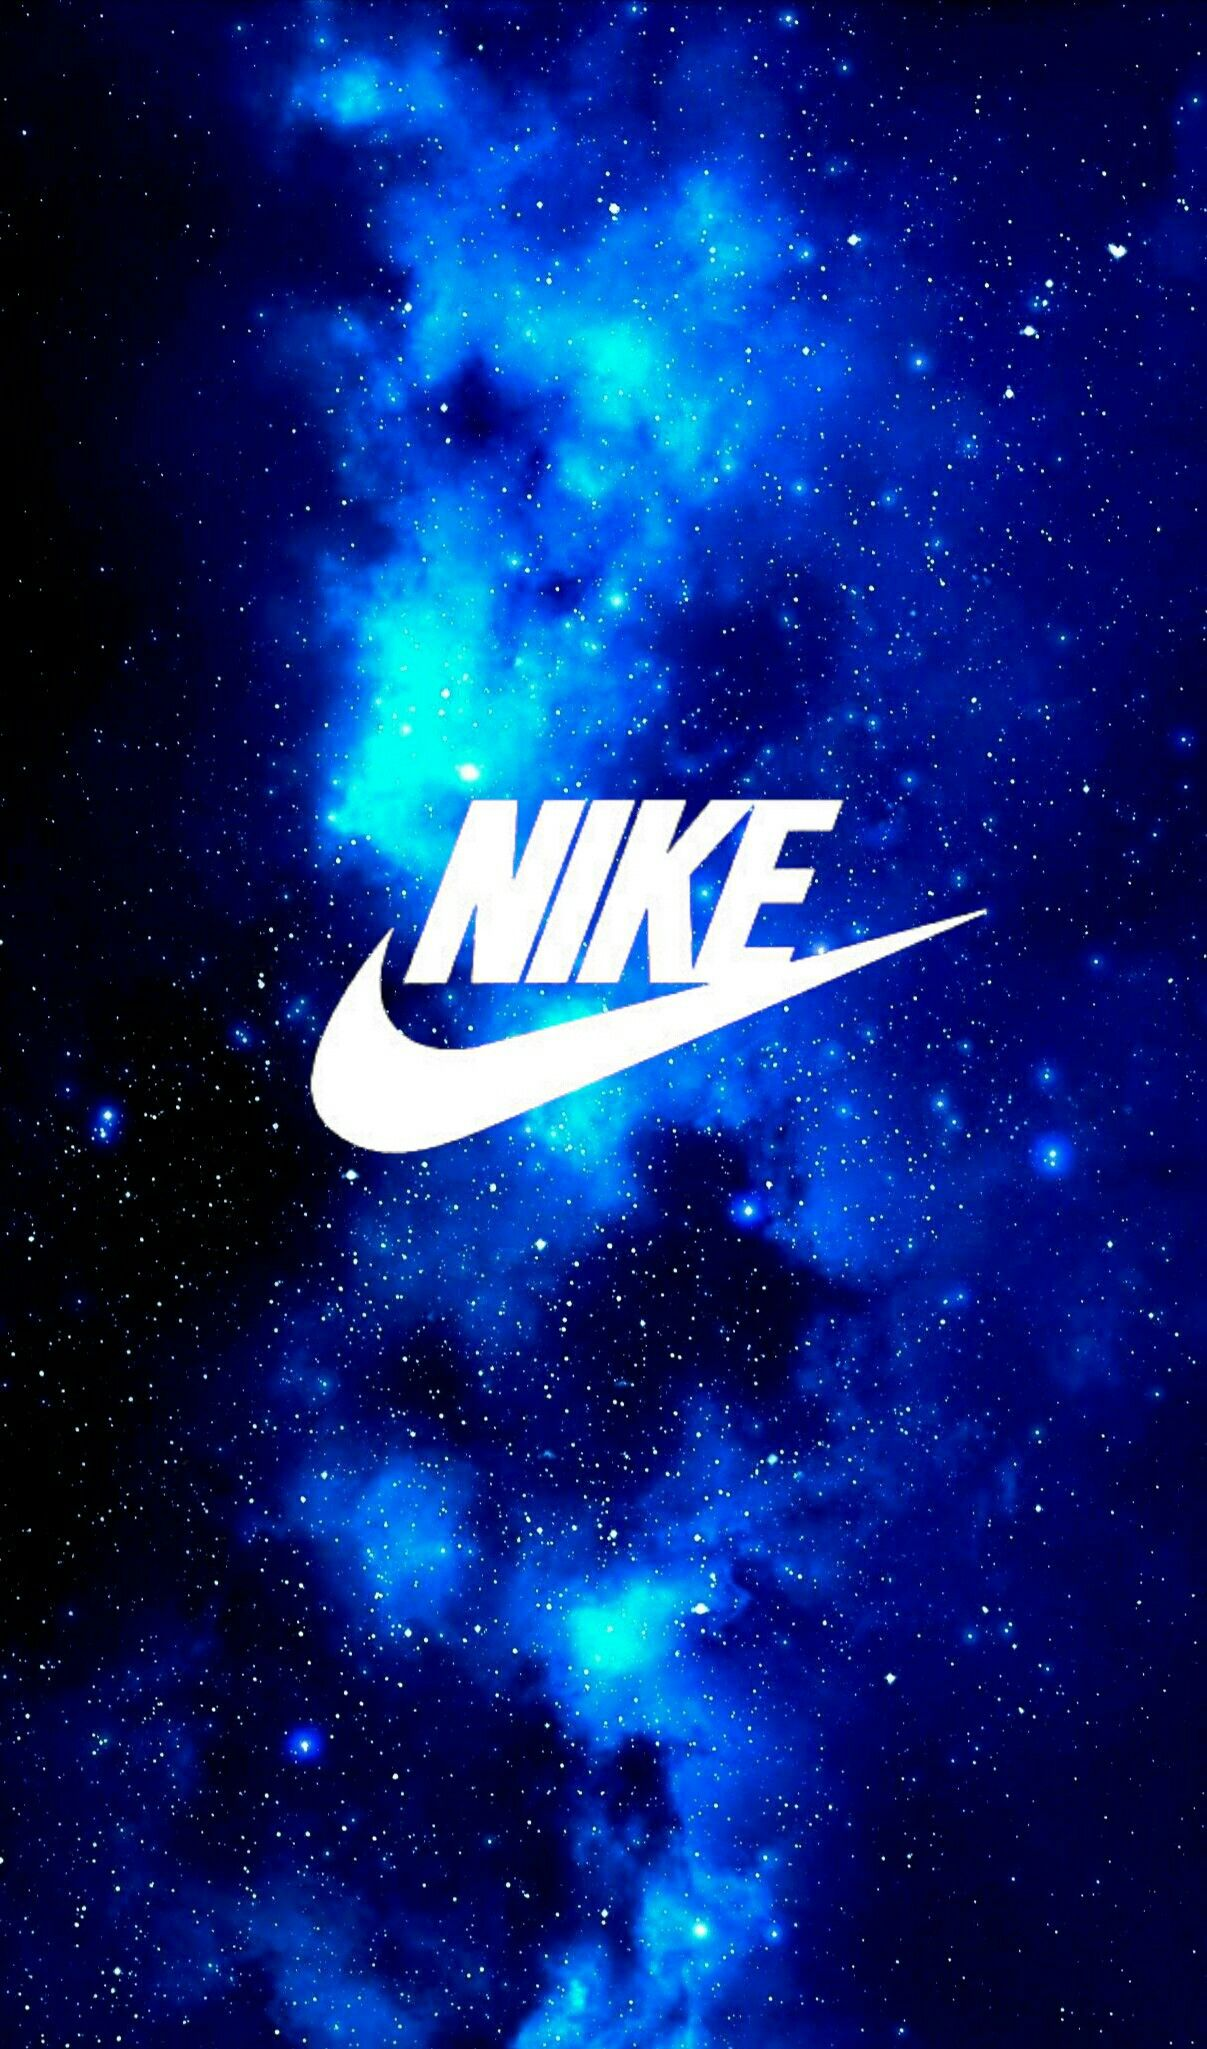 Pin By Esa Liwaru On Nike Nike Wallpaper Nike Logo Wallpapers Nike Wallpaper Iphone